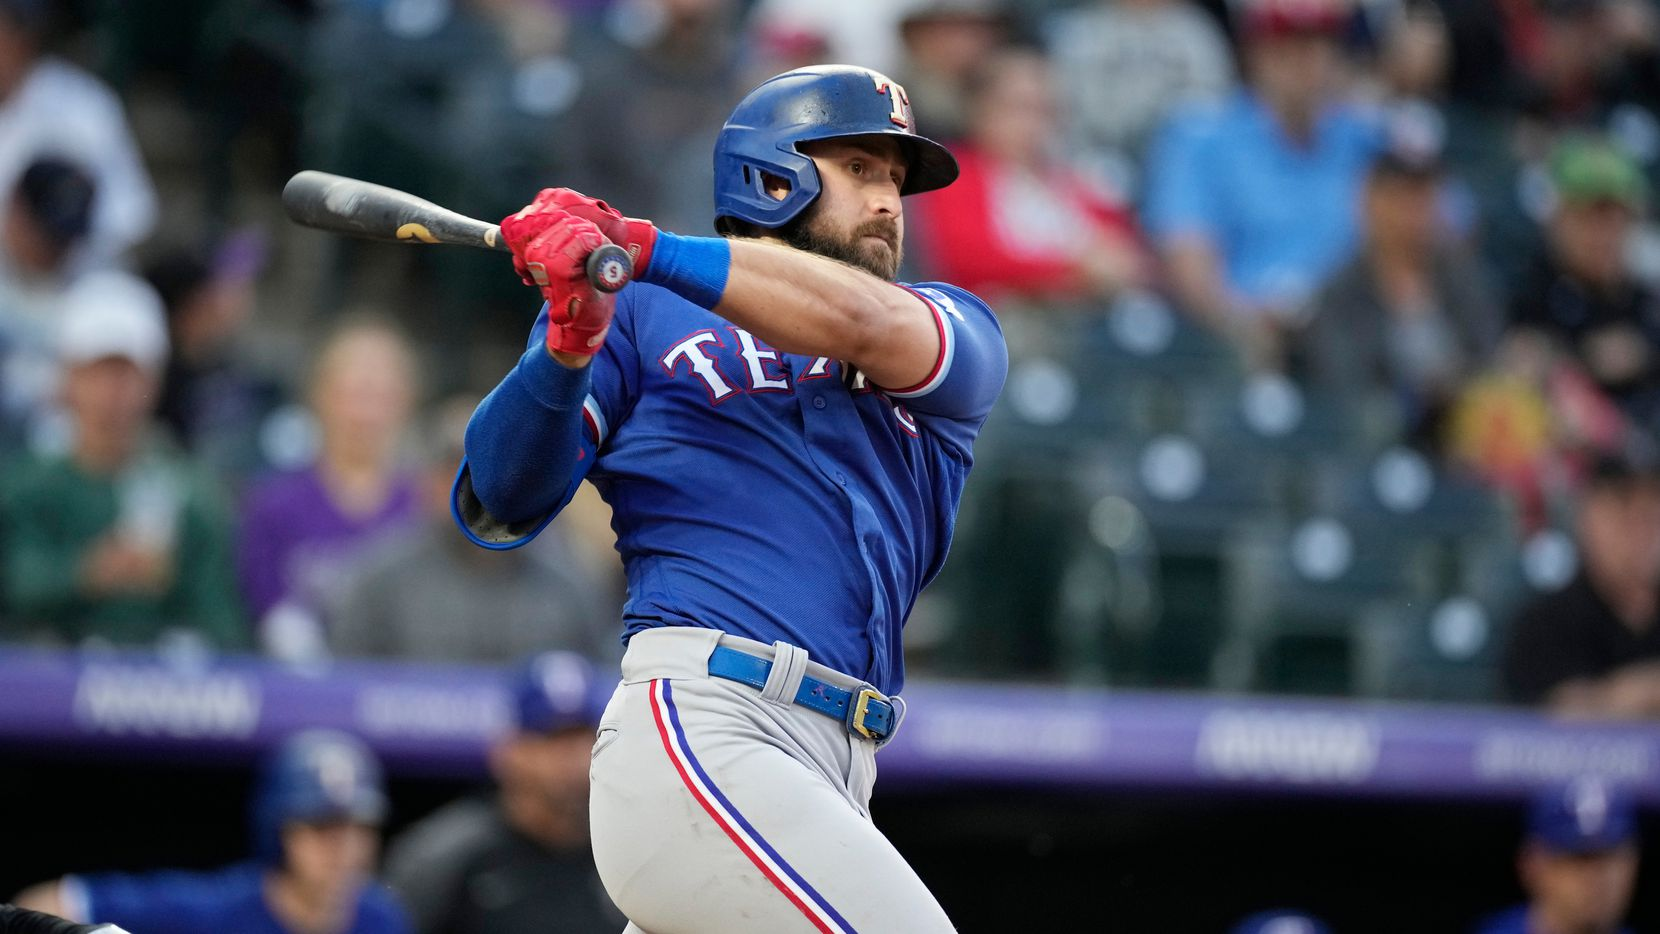 Texas Rangers' Joey Gallo grounds into a fielder's choice in the fourth inning of a baseball game against the Colorado Rockies Tuesday, June 1, 2021, in Denver. A run scored on the play.